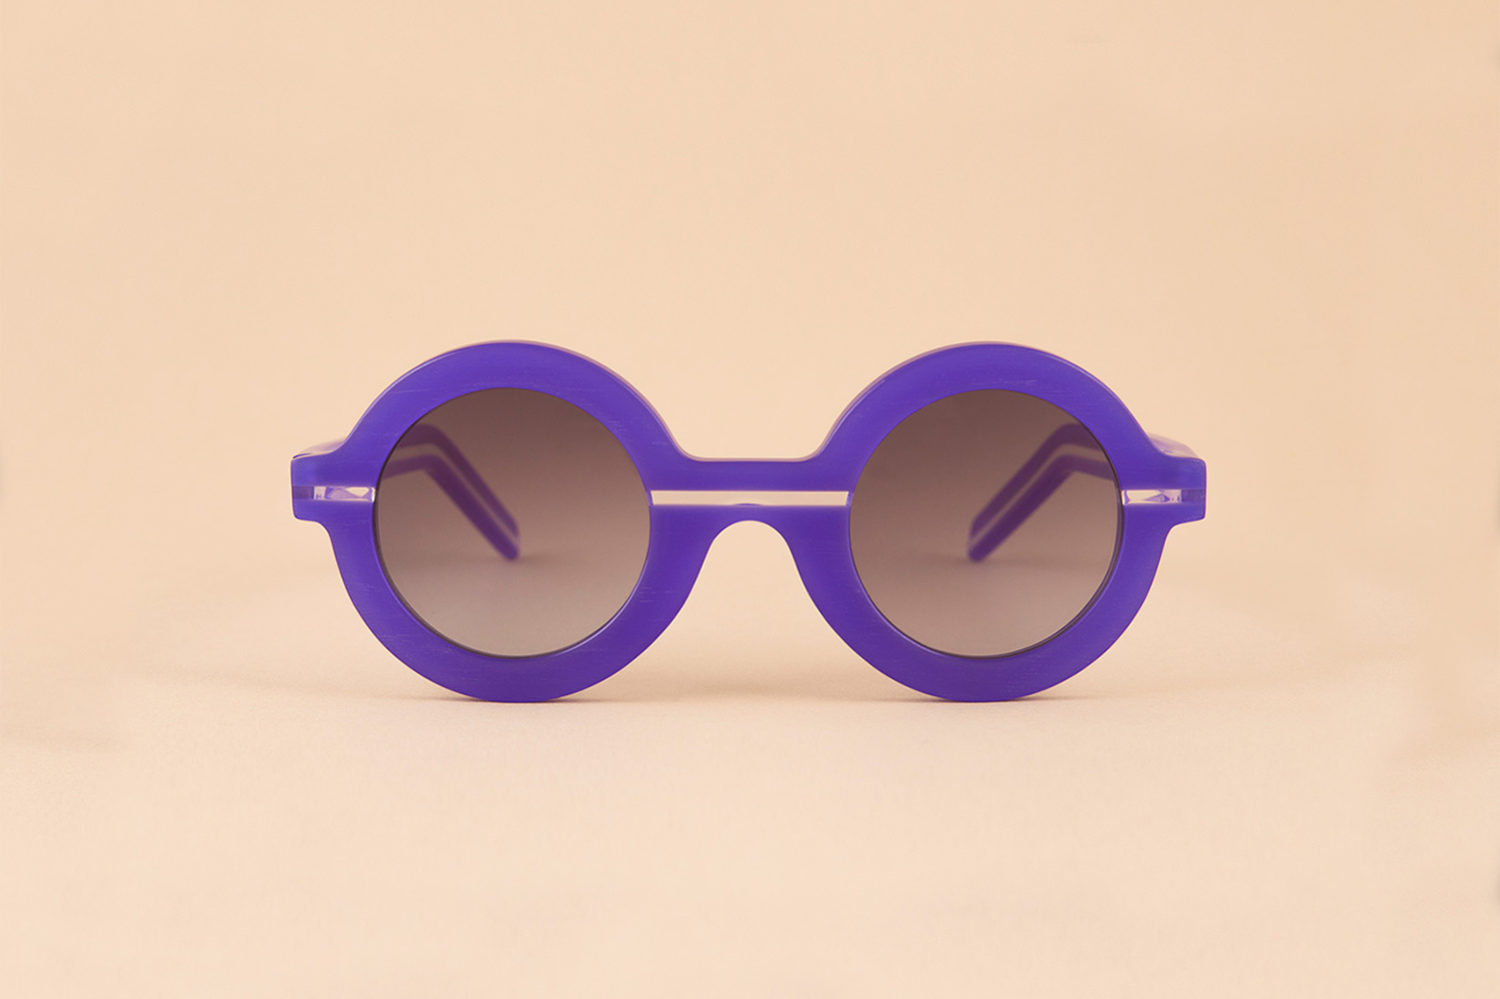 REVEL PARIS - MAISON RABIH KAYROUZ Small Full - Purple